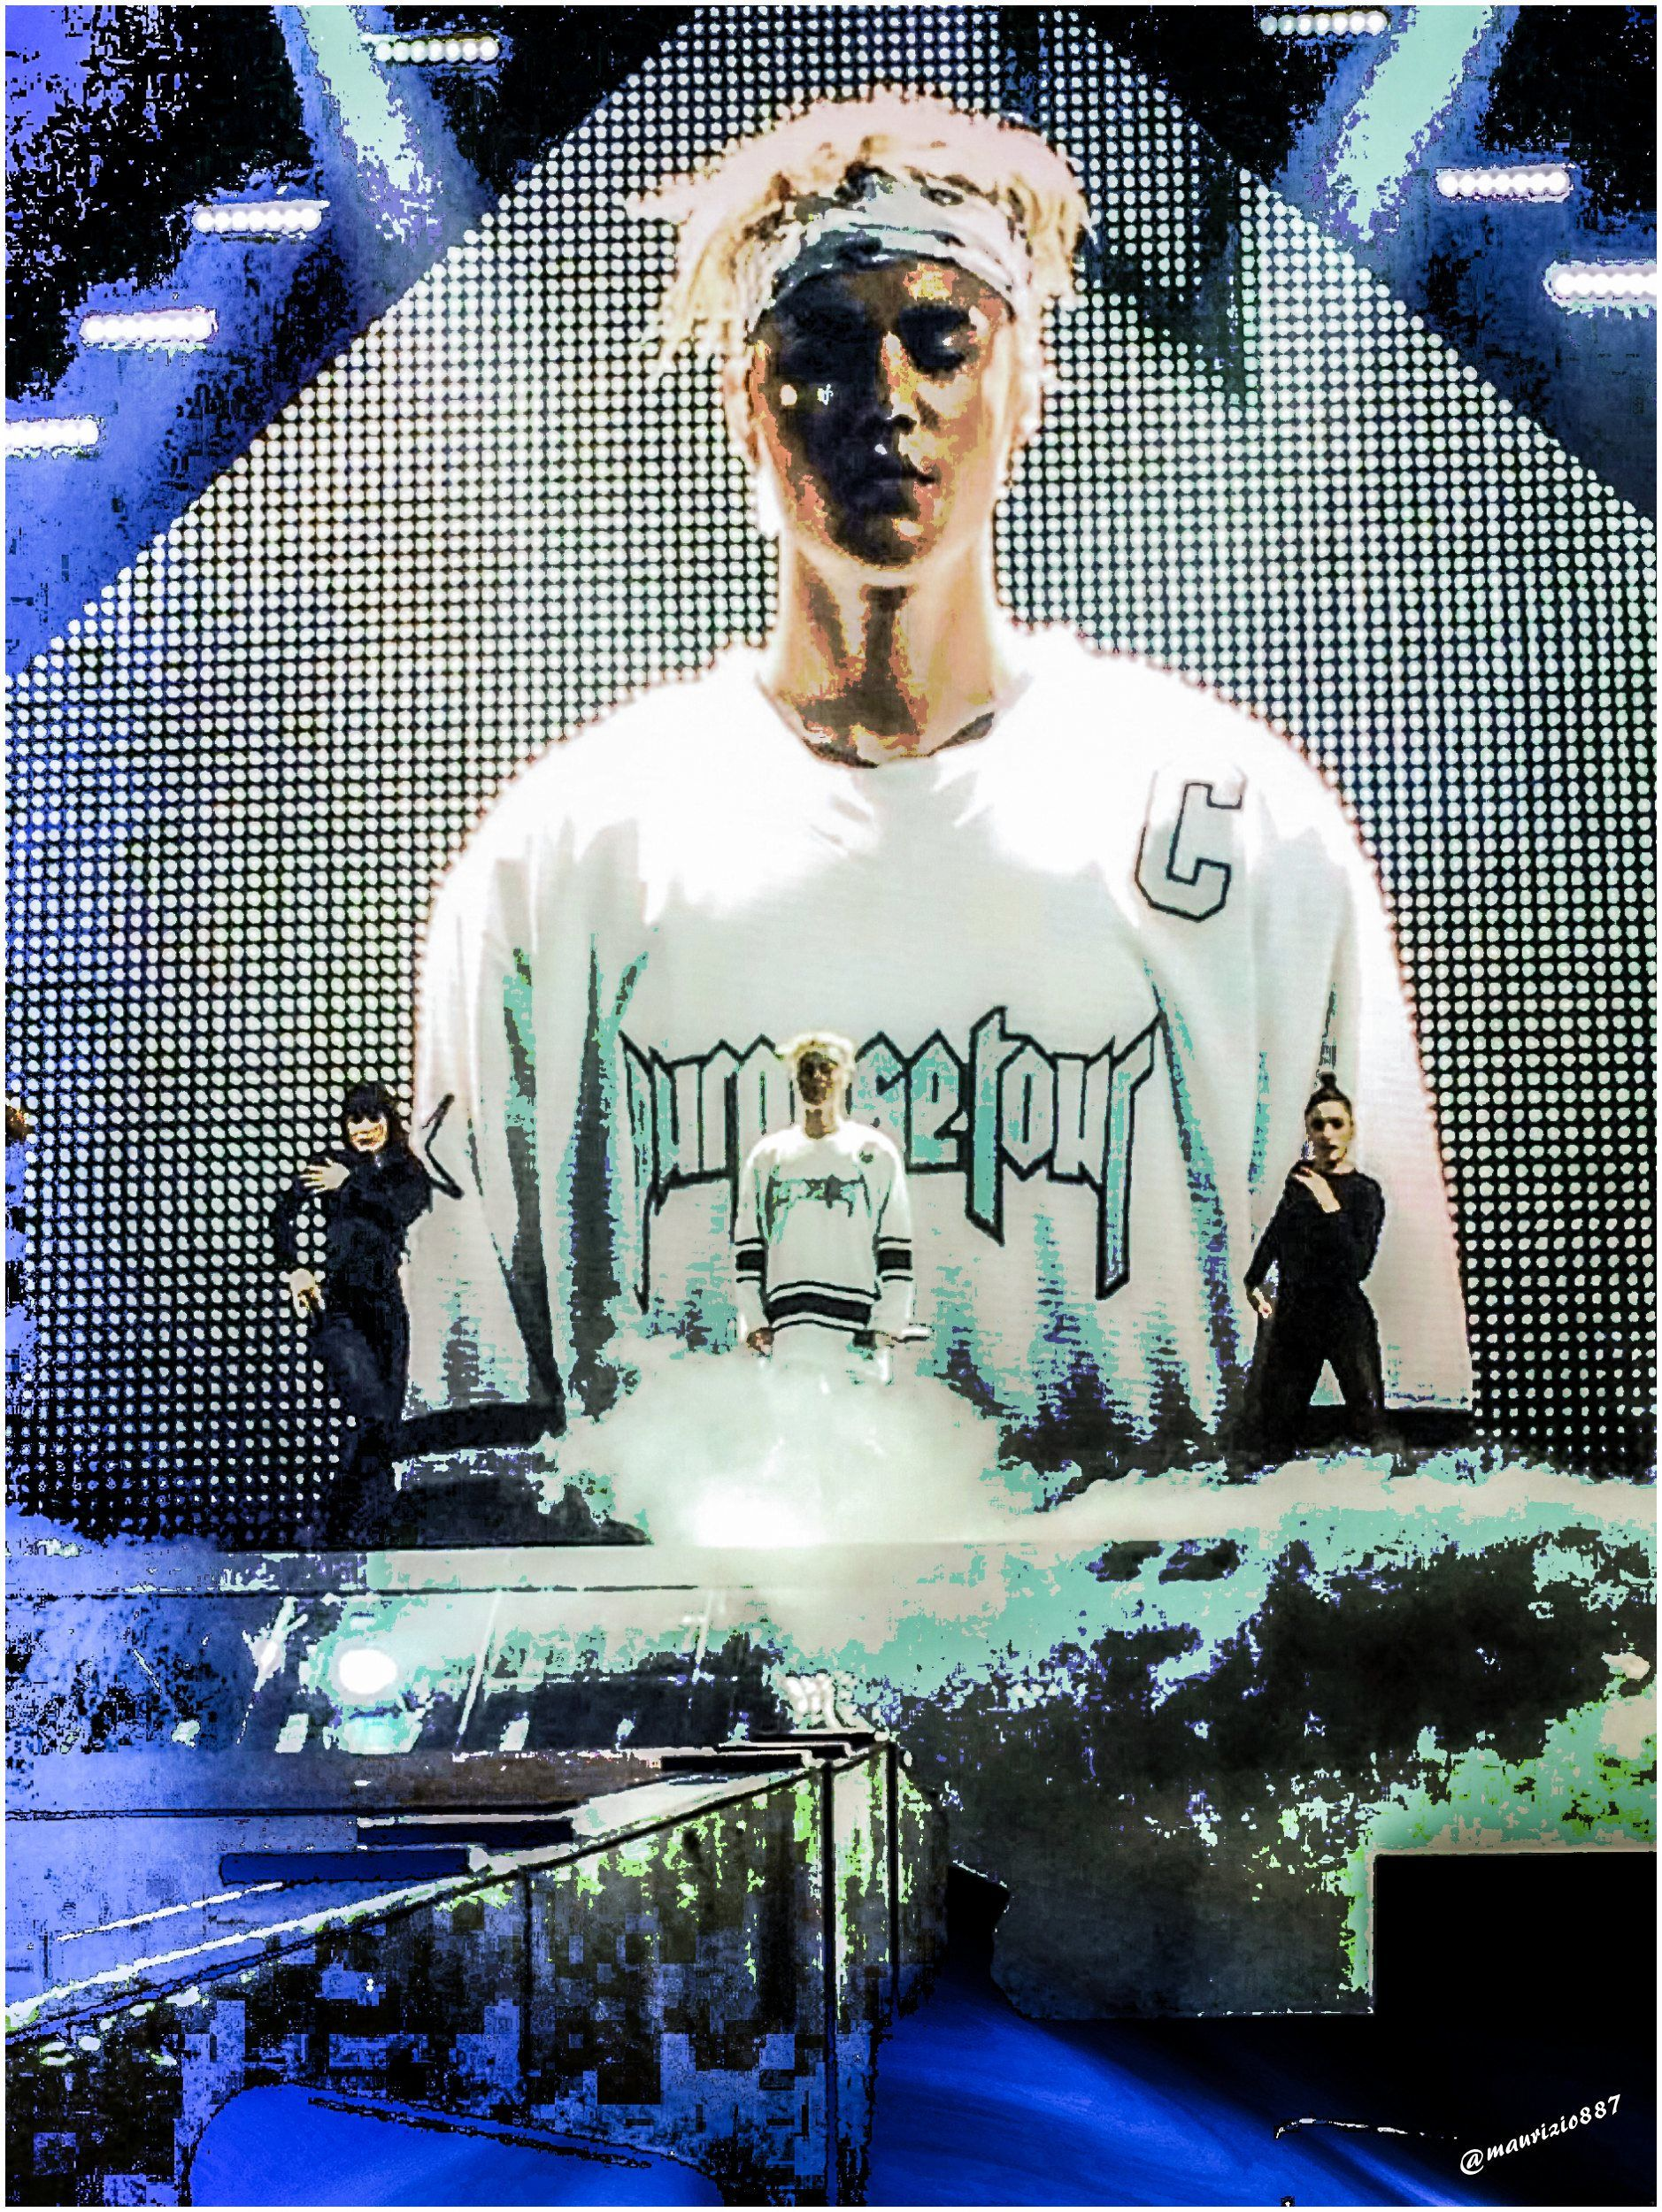 Photo Of Justin Bieberpurpose World Tour2016 For Fans Of Justin